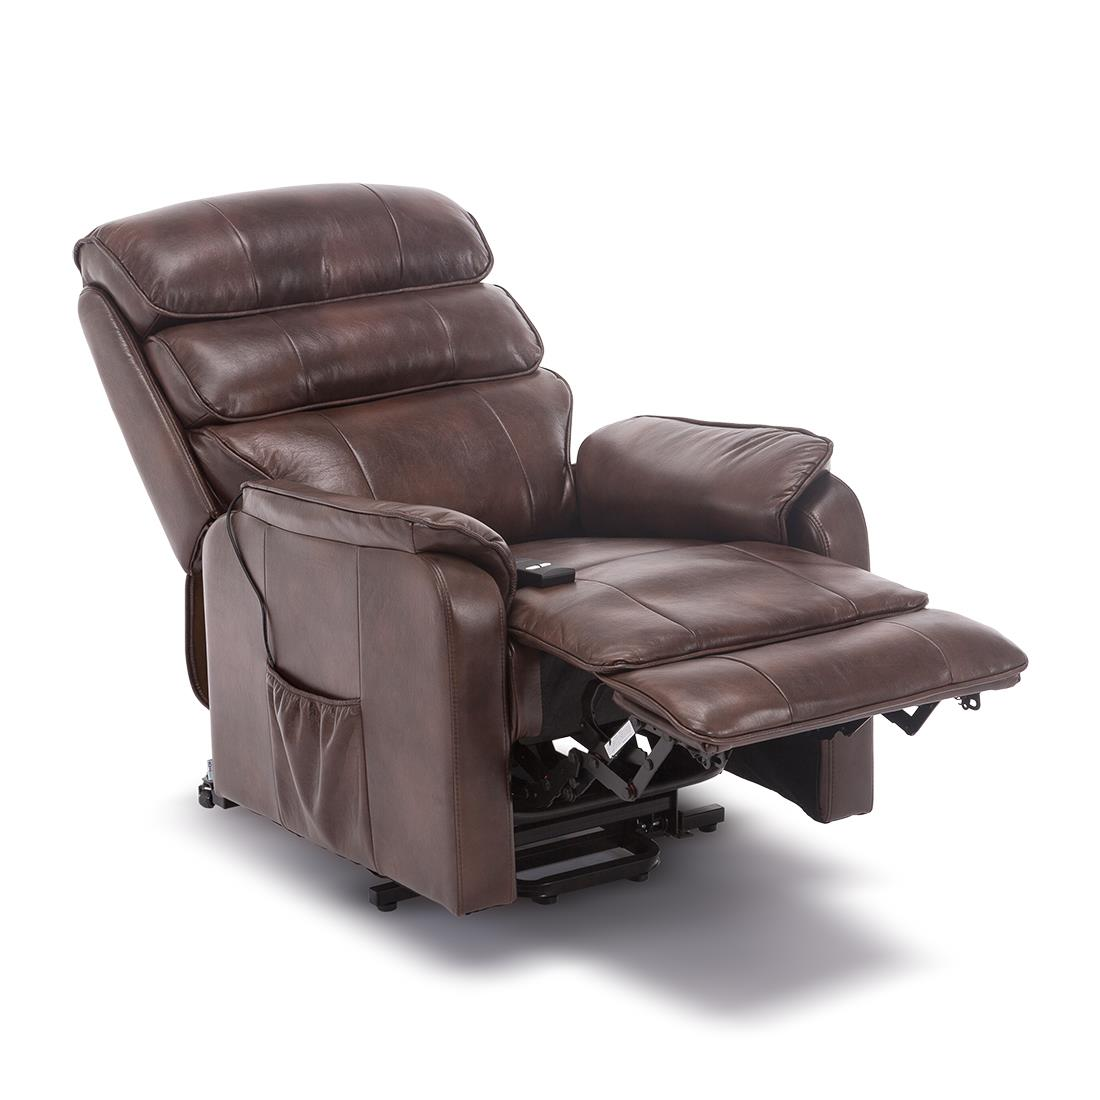 Details about BUCKINGHAM DUAL MOTOR ELECTRIC RISER RECLINER BOND LEATHER MOBILITY LIFT CHAIR